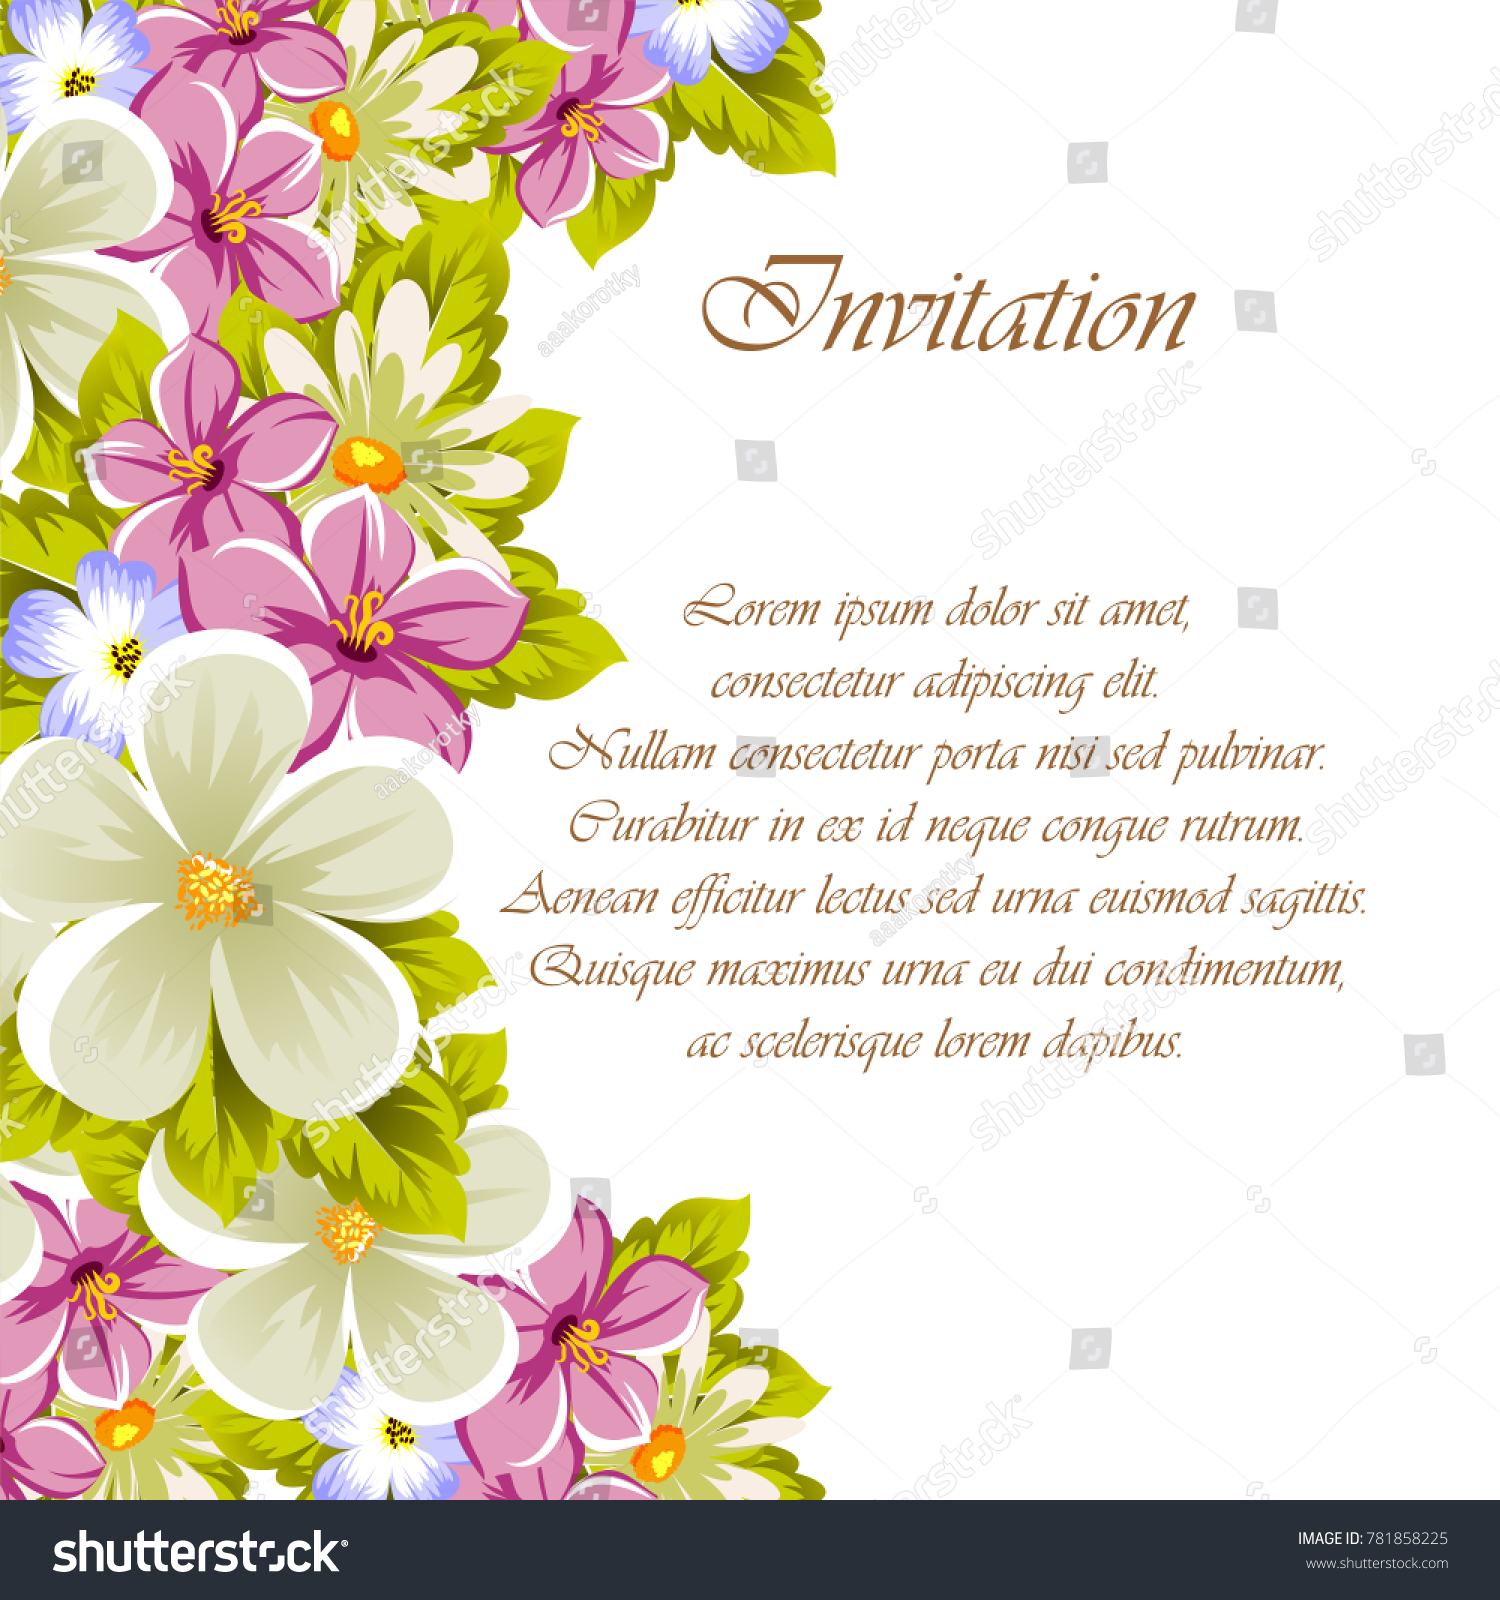 Congratulatory frame flowers design textures postcards stock vector congratulatory frame of flowers for design textures postcards greeting cards for birthday izmirmasajfo